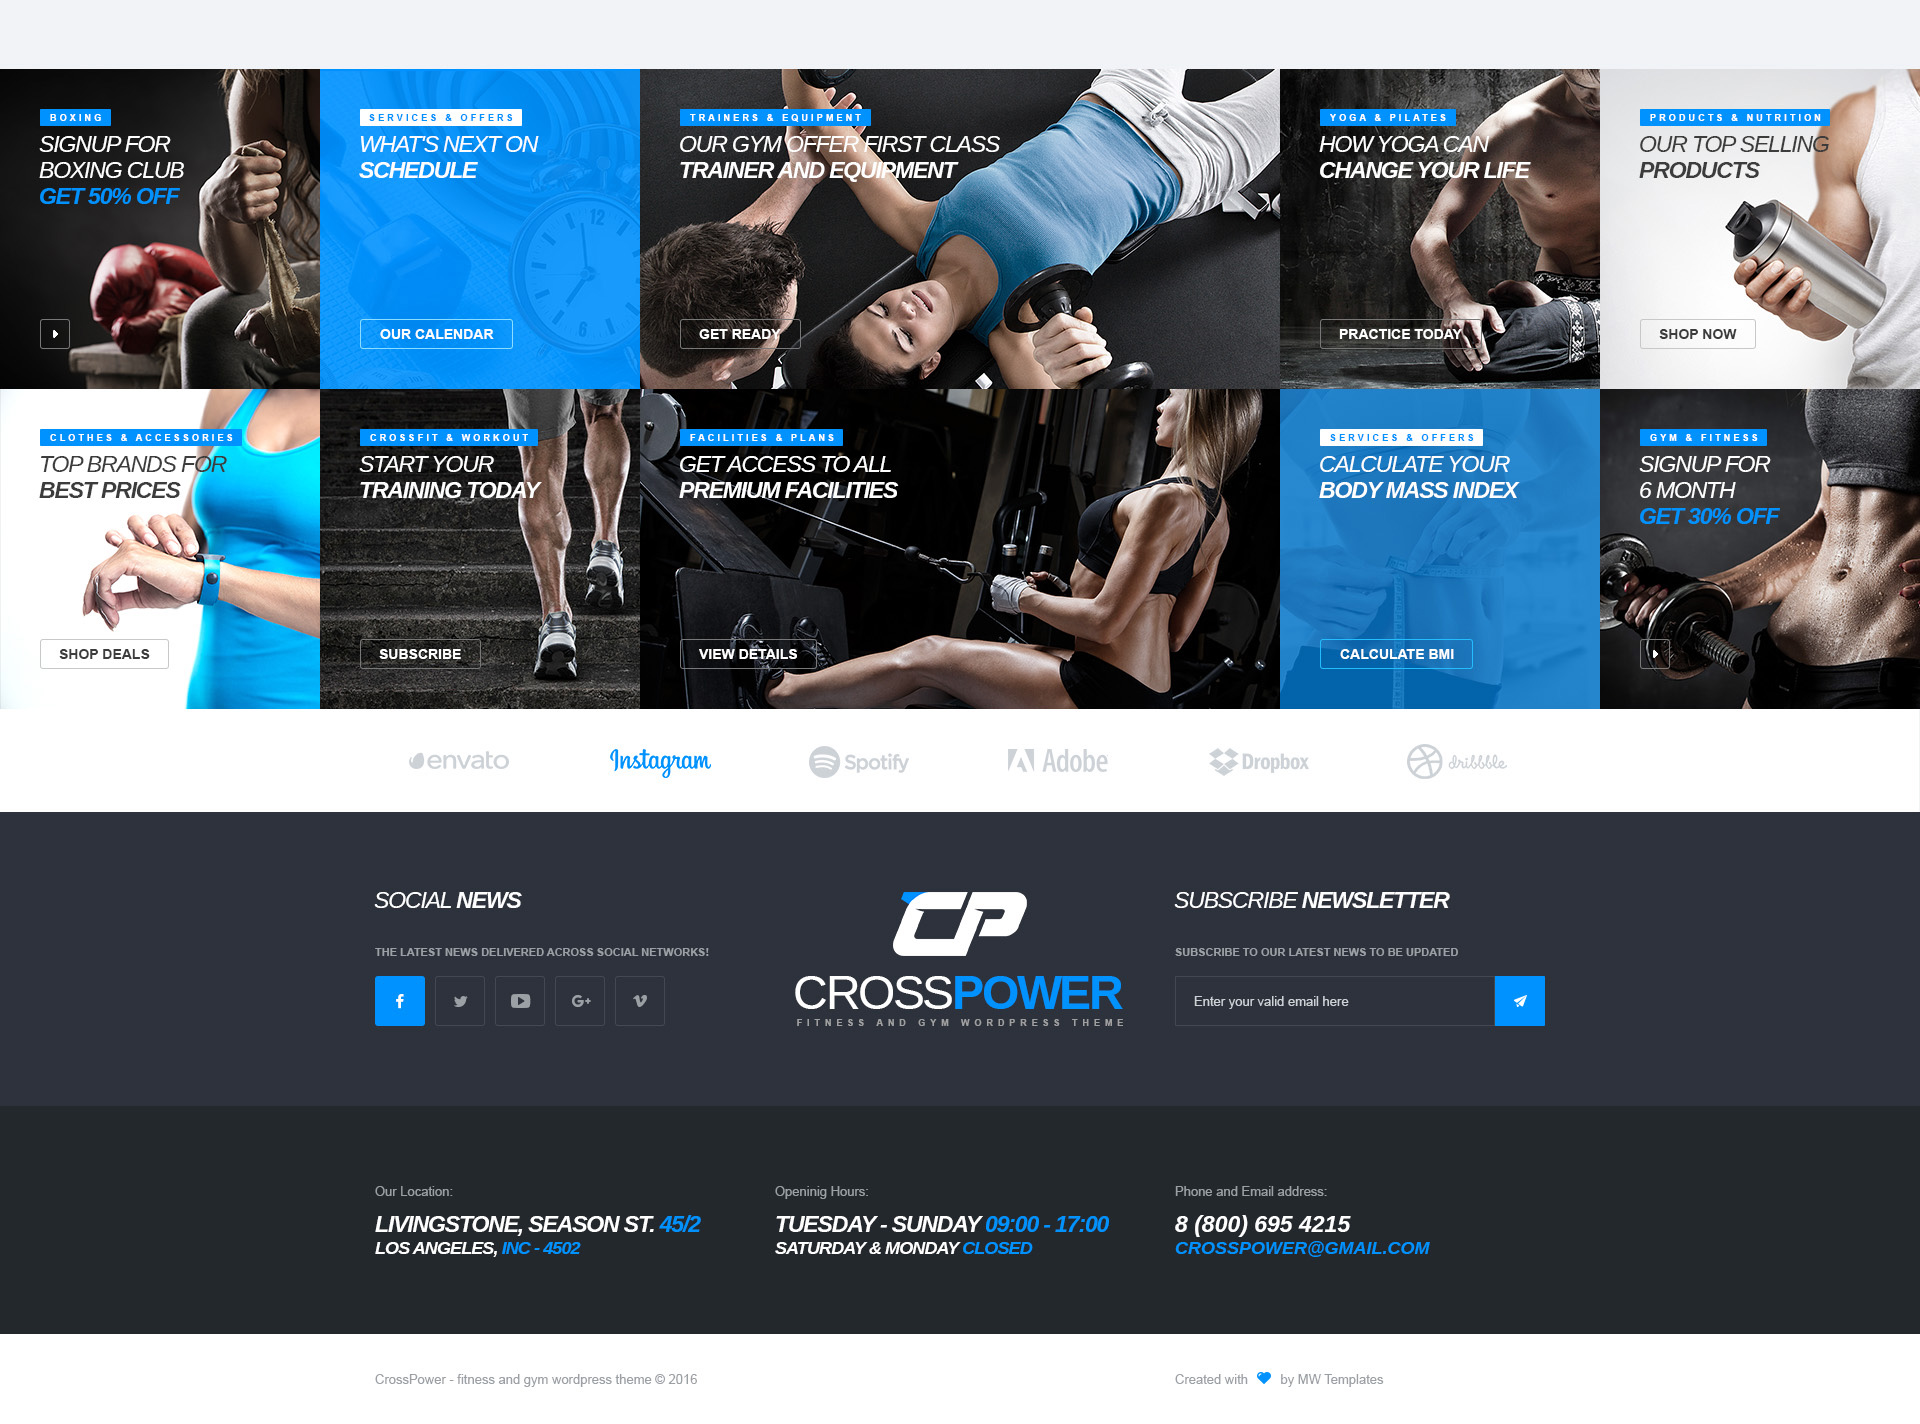 CrossPower - GYM/Sport HTML Template | Modern Web Templates on home fitness room design, home restaurant design, home chemistry lab design, home tennis court design, home boundary wall design, home golf design, home recreation room design, home tv room design, home laboratory design, home garage design, home nightclub design, home art studio design, home cafe design, home audio studio design, home computer lab design, home air conditioning design, home media center design, home gym design, home shop design, home church design,